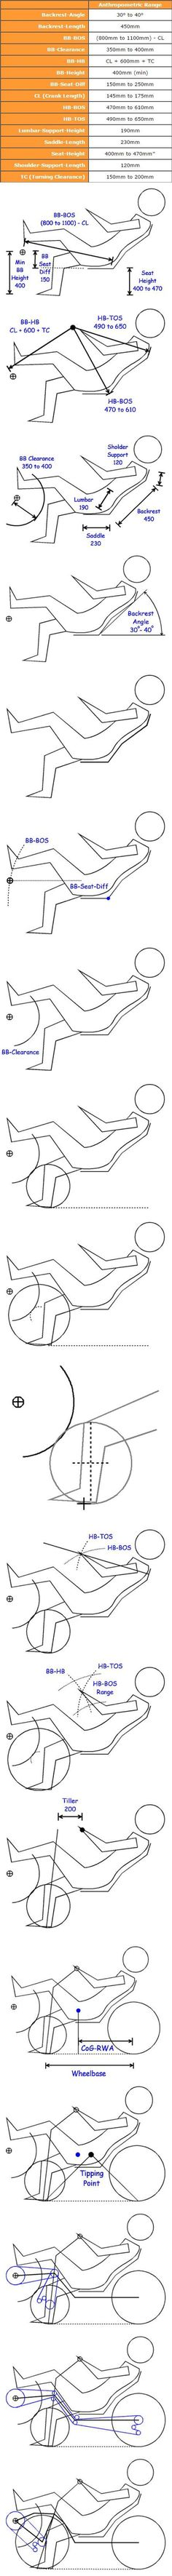 Ergonomic Recumbent concept design